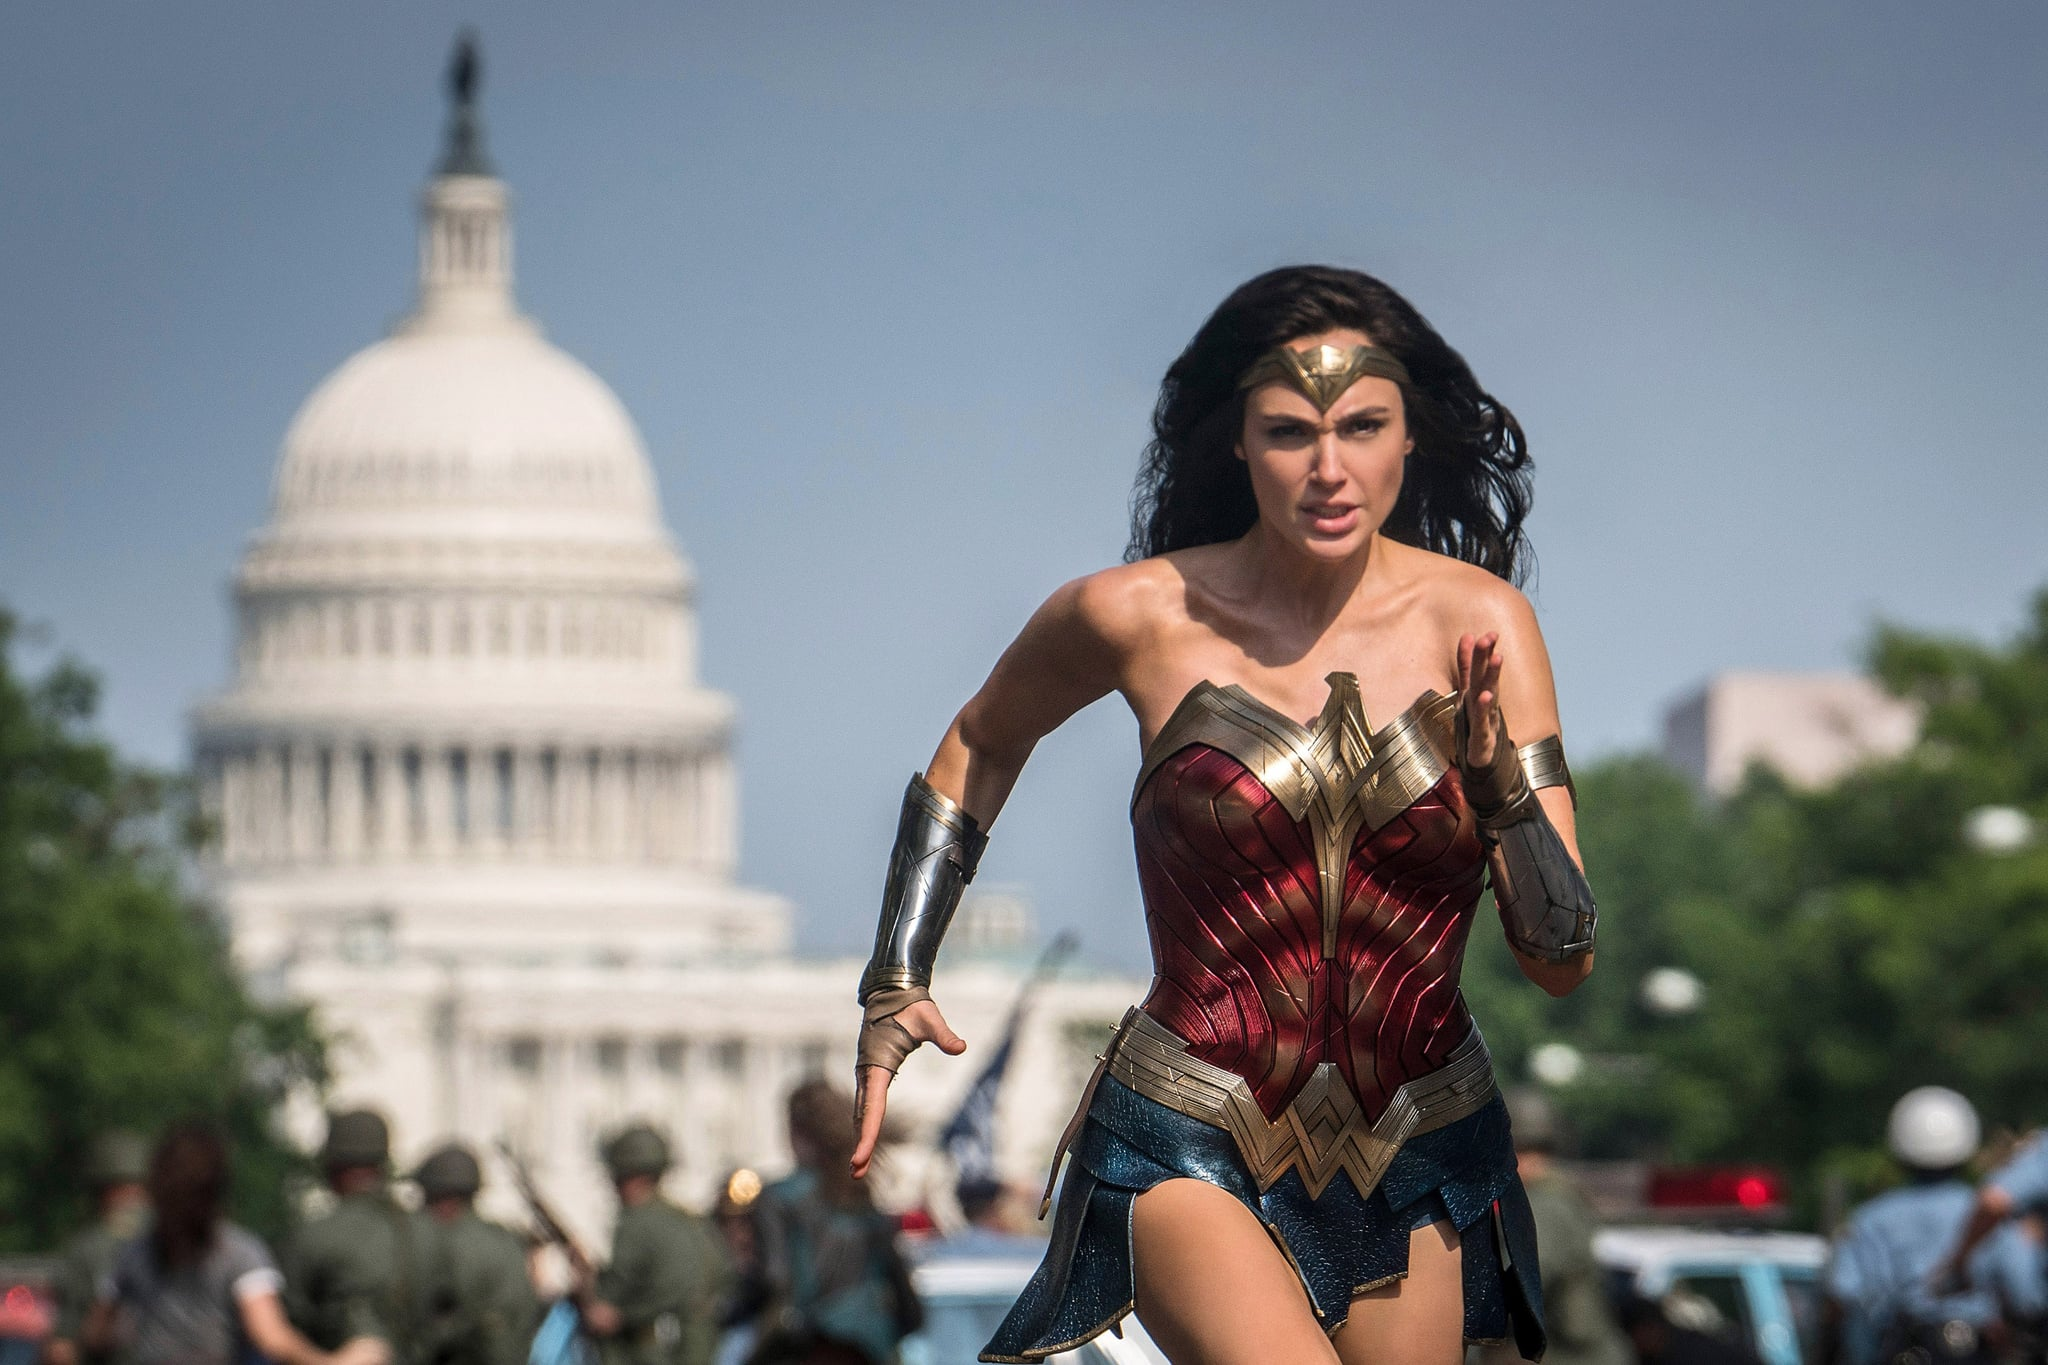 WONDER WOMAN 1984, Gal Gadot as Wonder Woman, 2020. ph: Clay Enos /  Warner Bros. / Courtesy Everett Collection